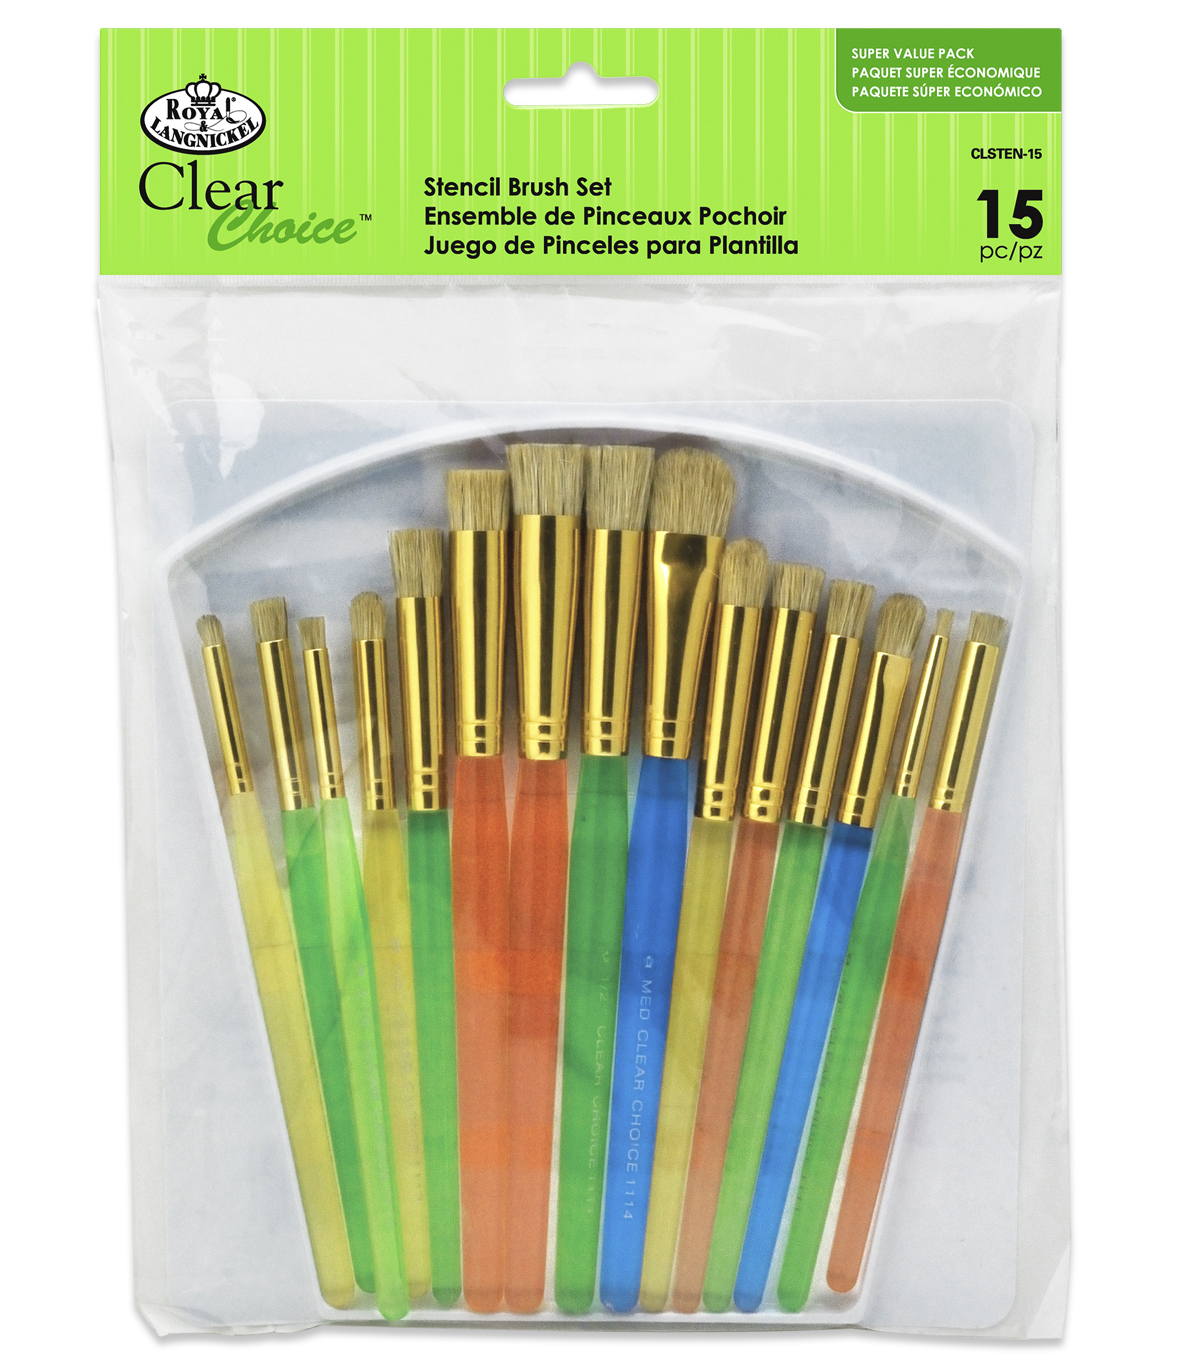 Royal & Langnickel Variety Stencil Brush Set 15pk